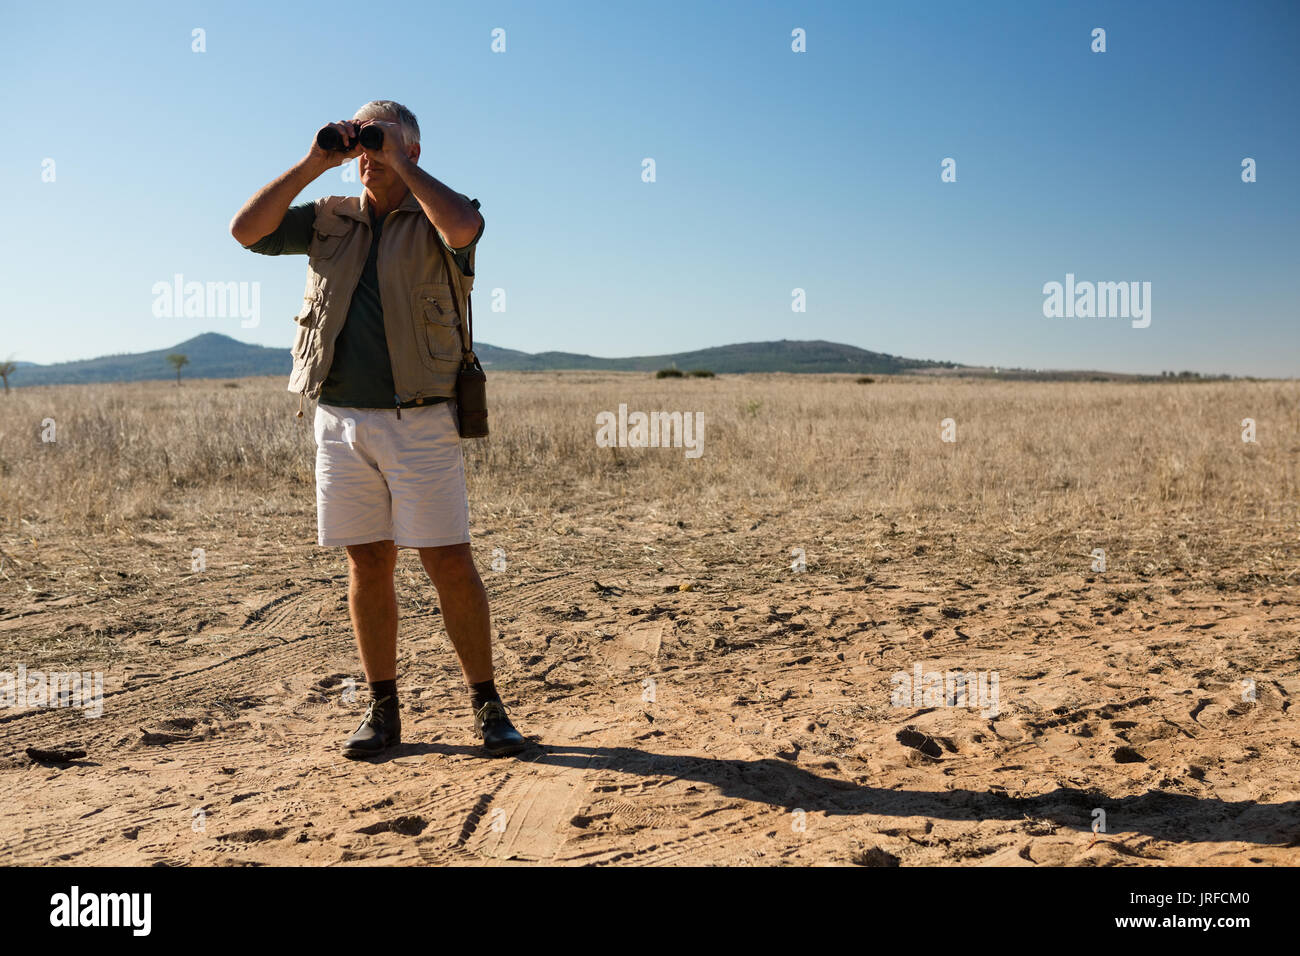 Man looking through binocular while standing on landscape during sunny day - Stock Image